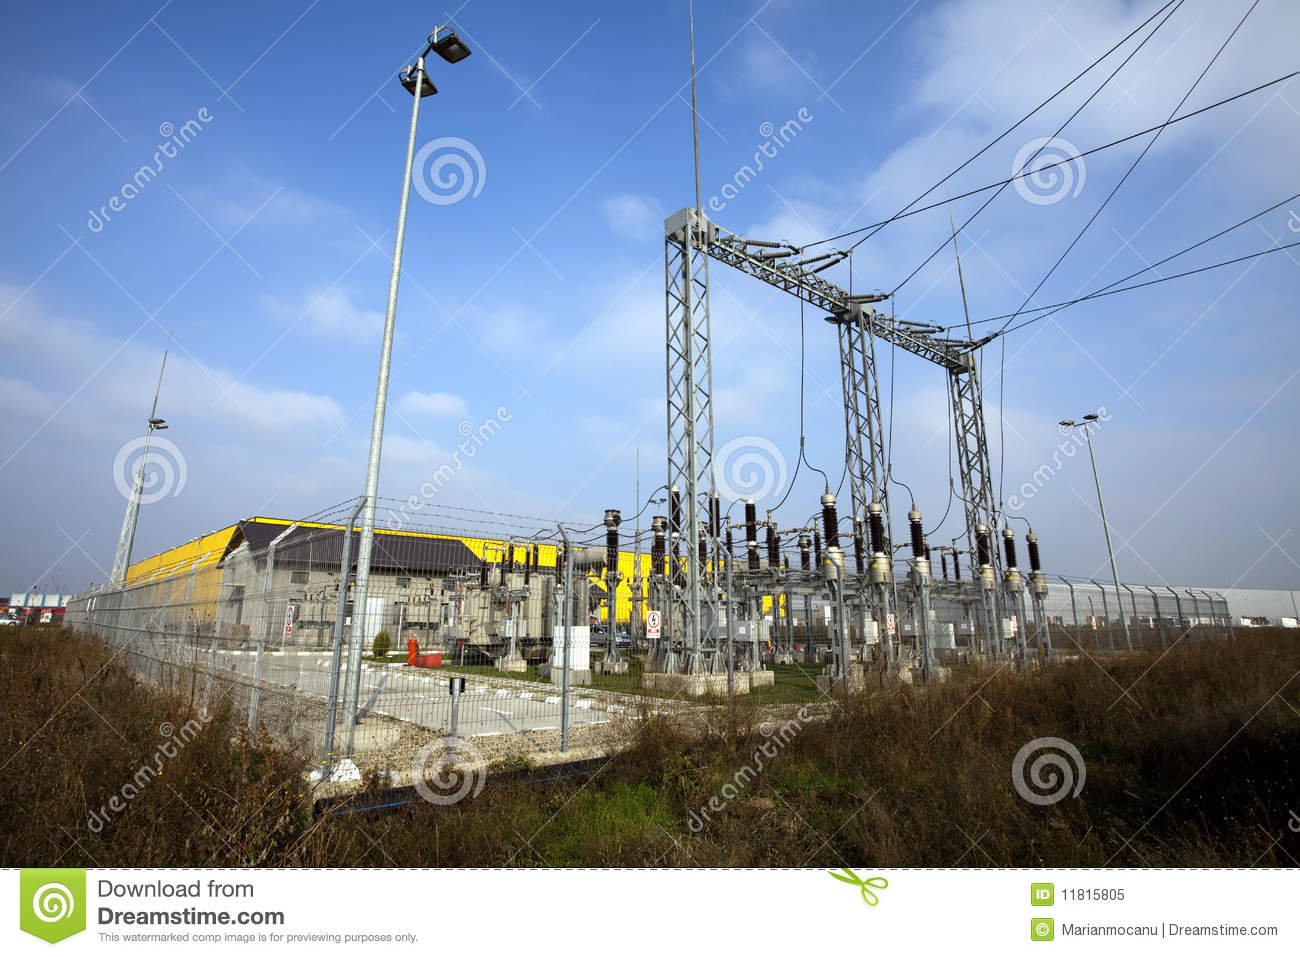 Electrical Power Plant Royalty Free Stock Photo - Image: 11815805